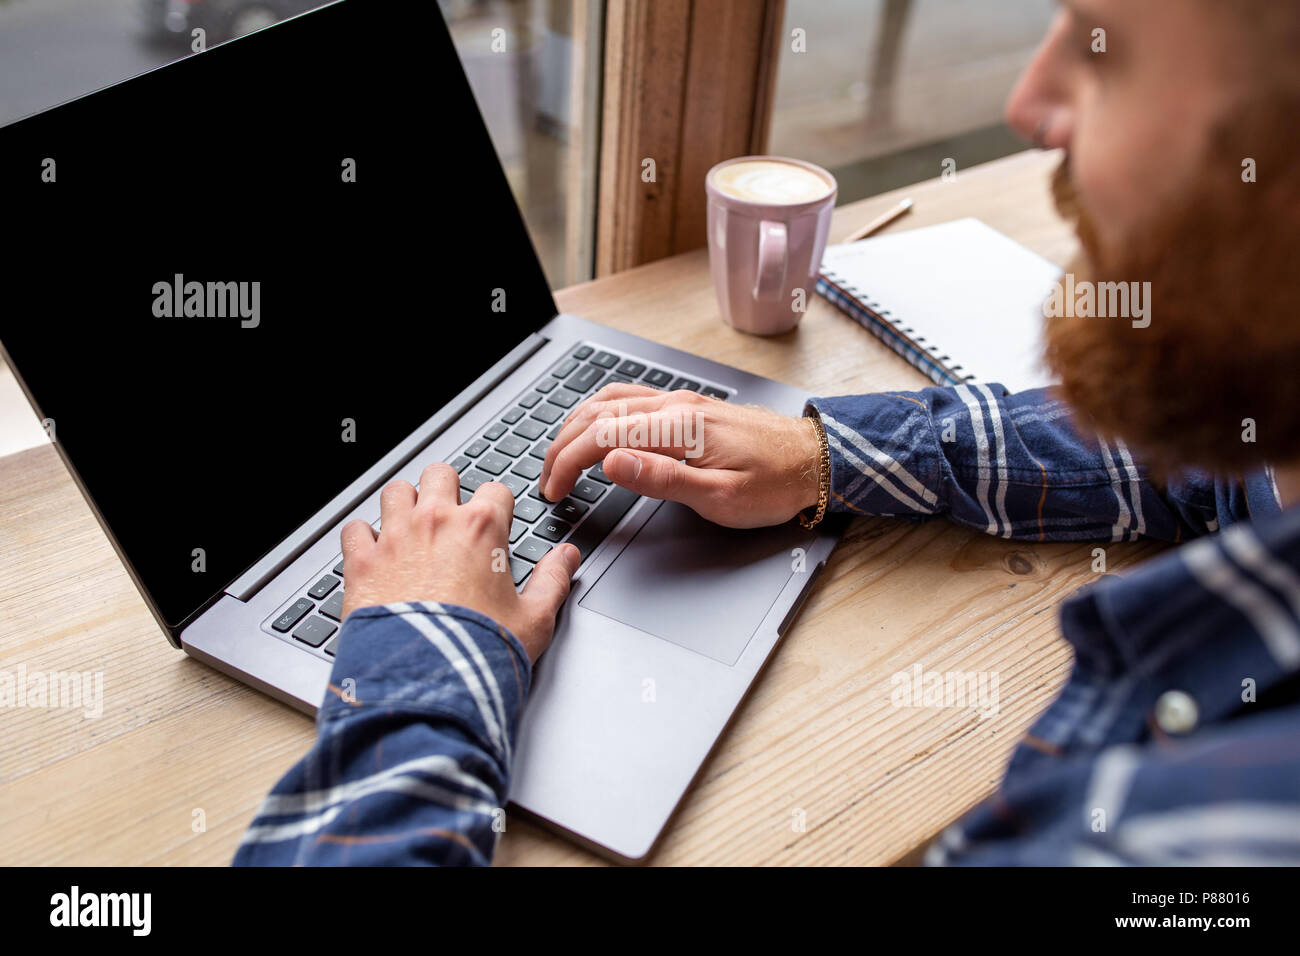 Cropped image of young man chatting via net-book during work break in coffee shop, male sitting in front open laptop computer with blank copy space screen. - Stock Image